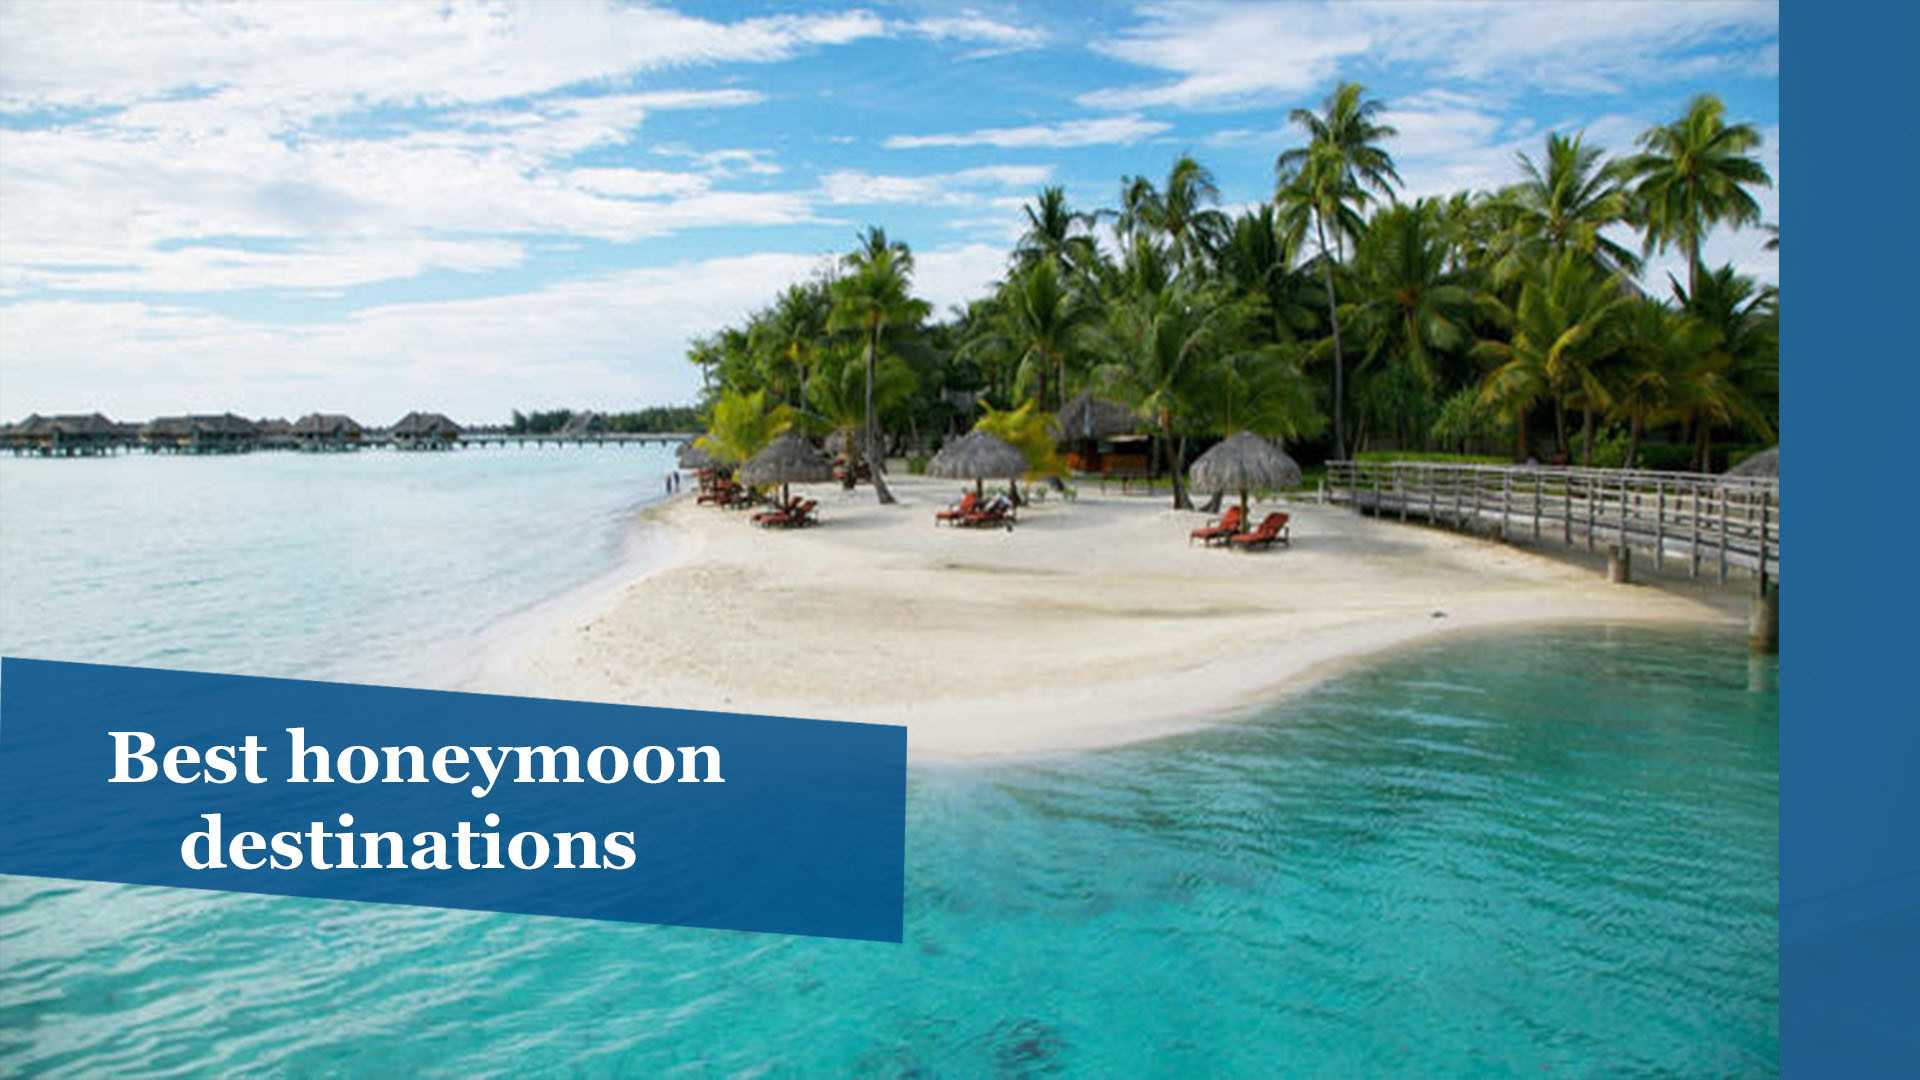 26 best honeymoon destinations - chicago tribune